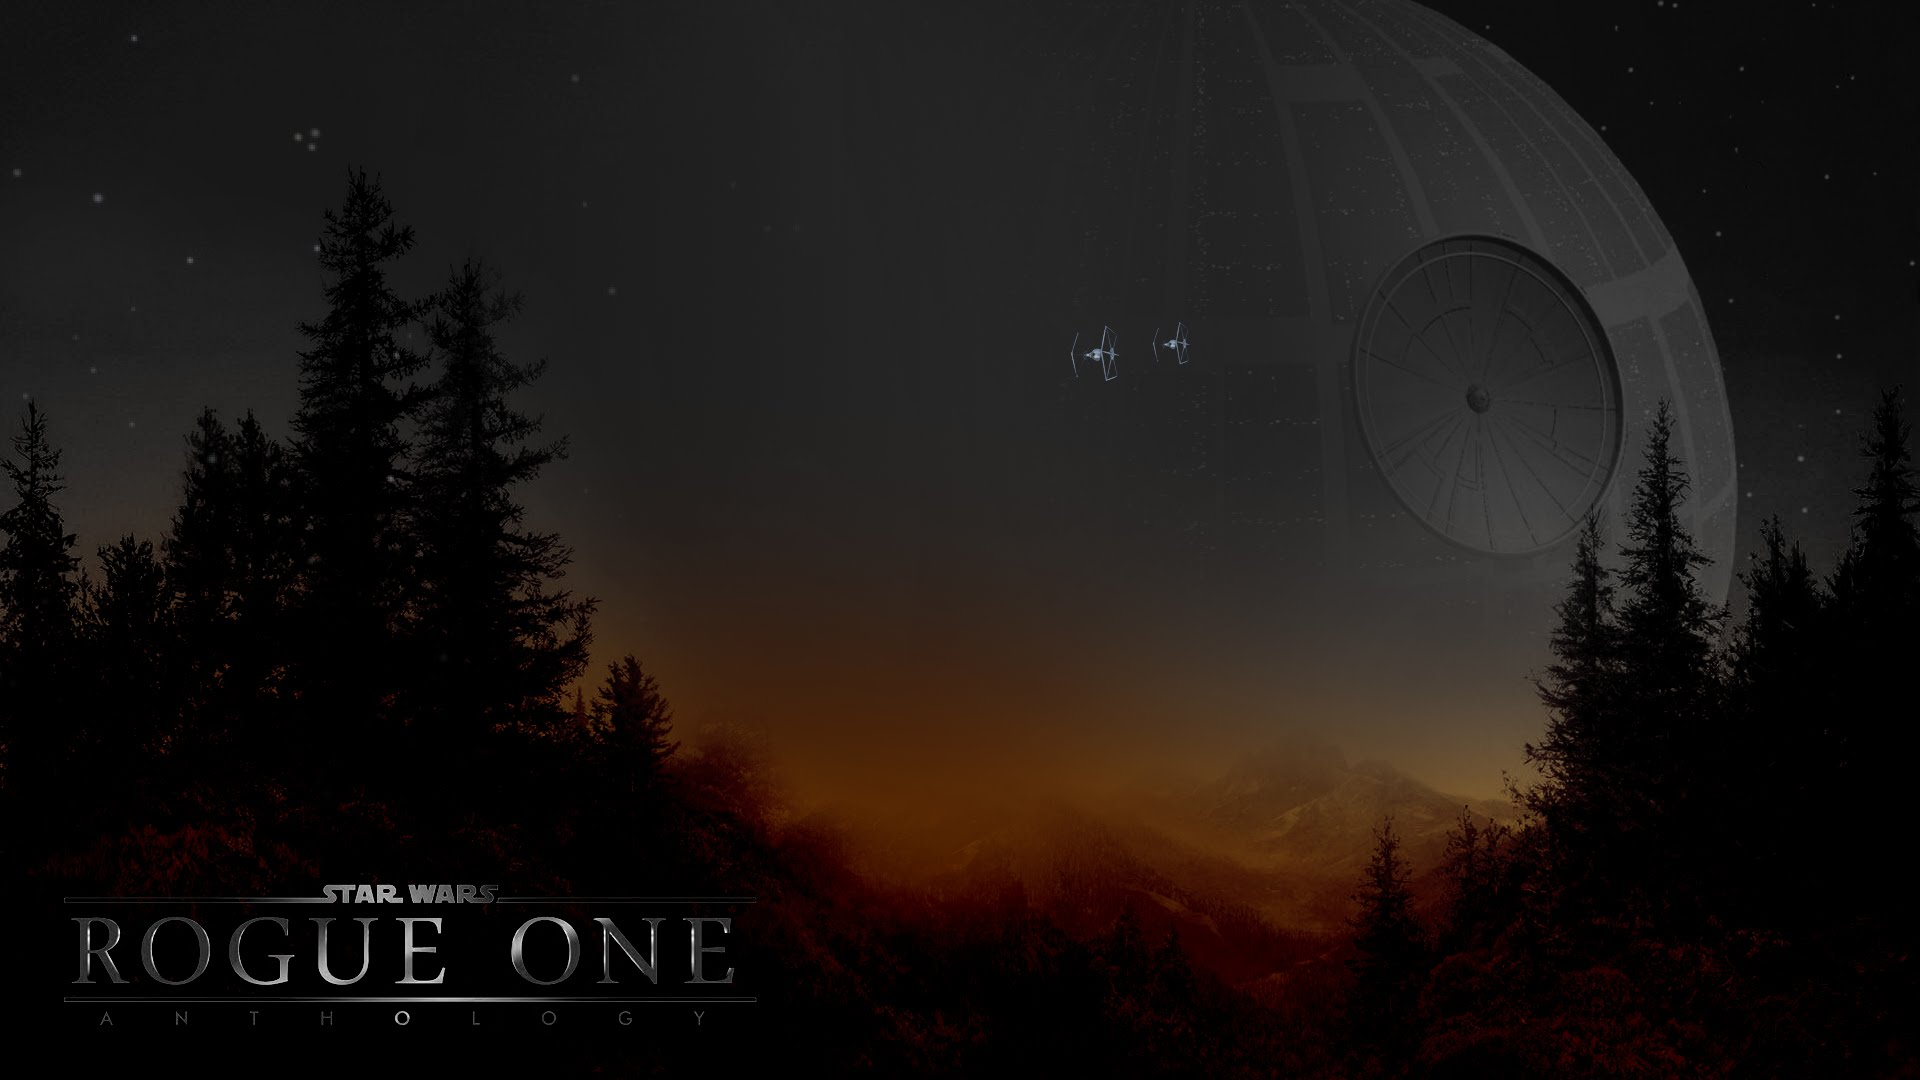 Star Wars: Rouge One